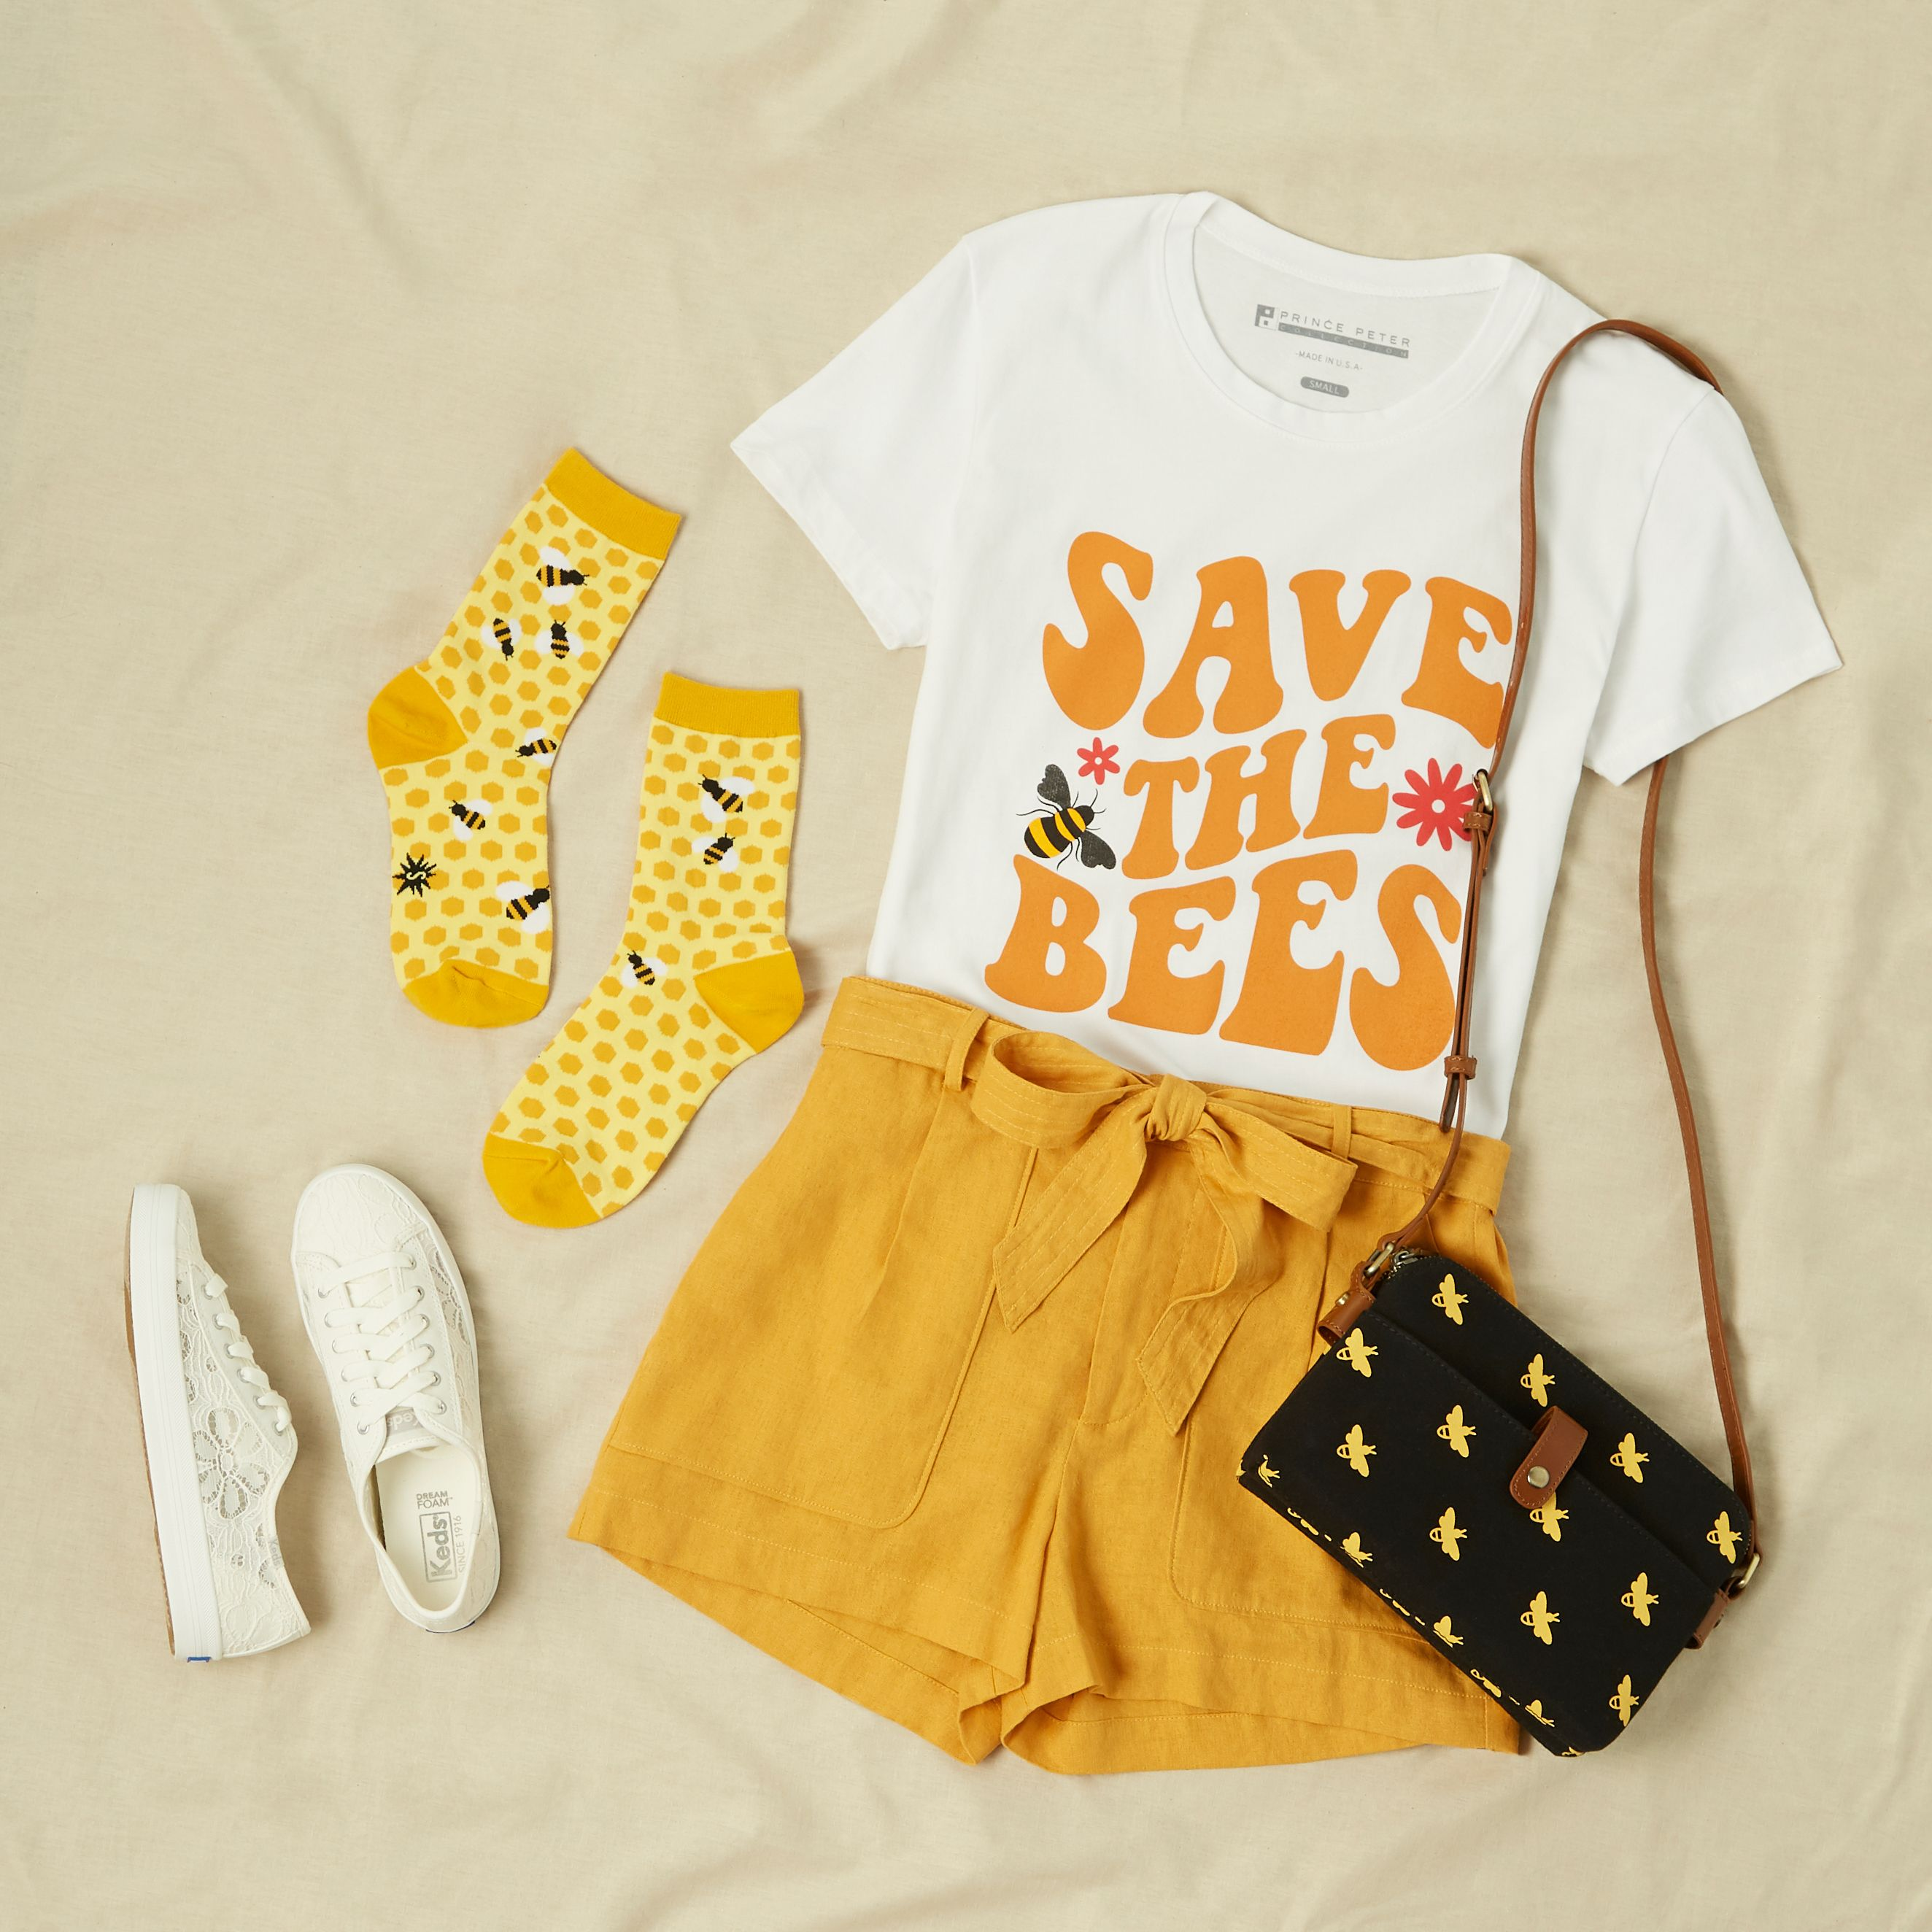 Bee Gifts: in Cute, Unique Styles